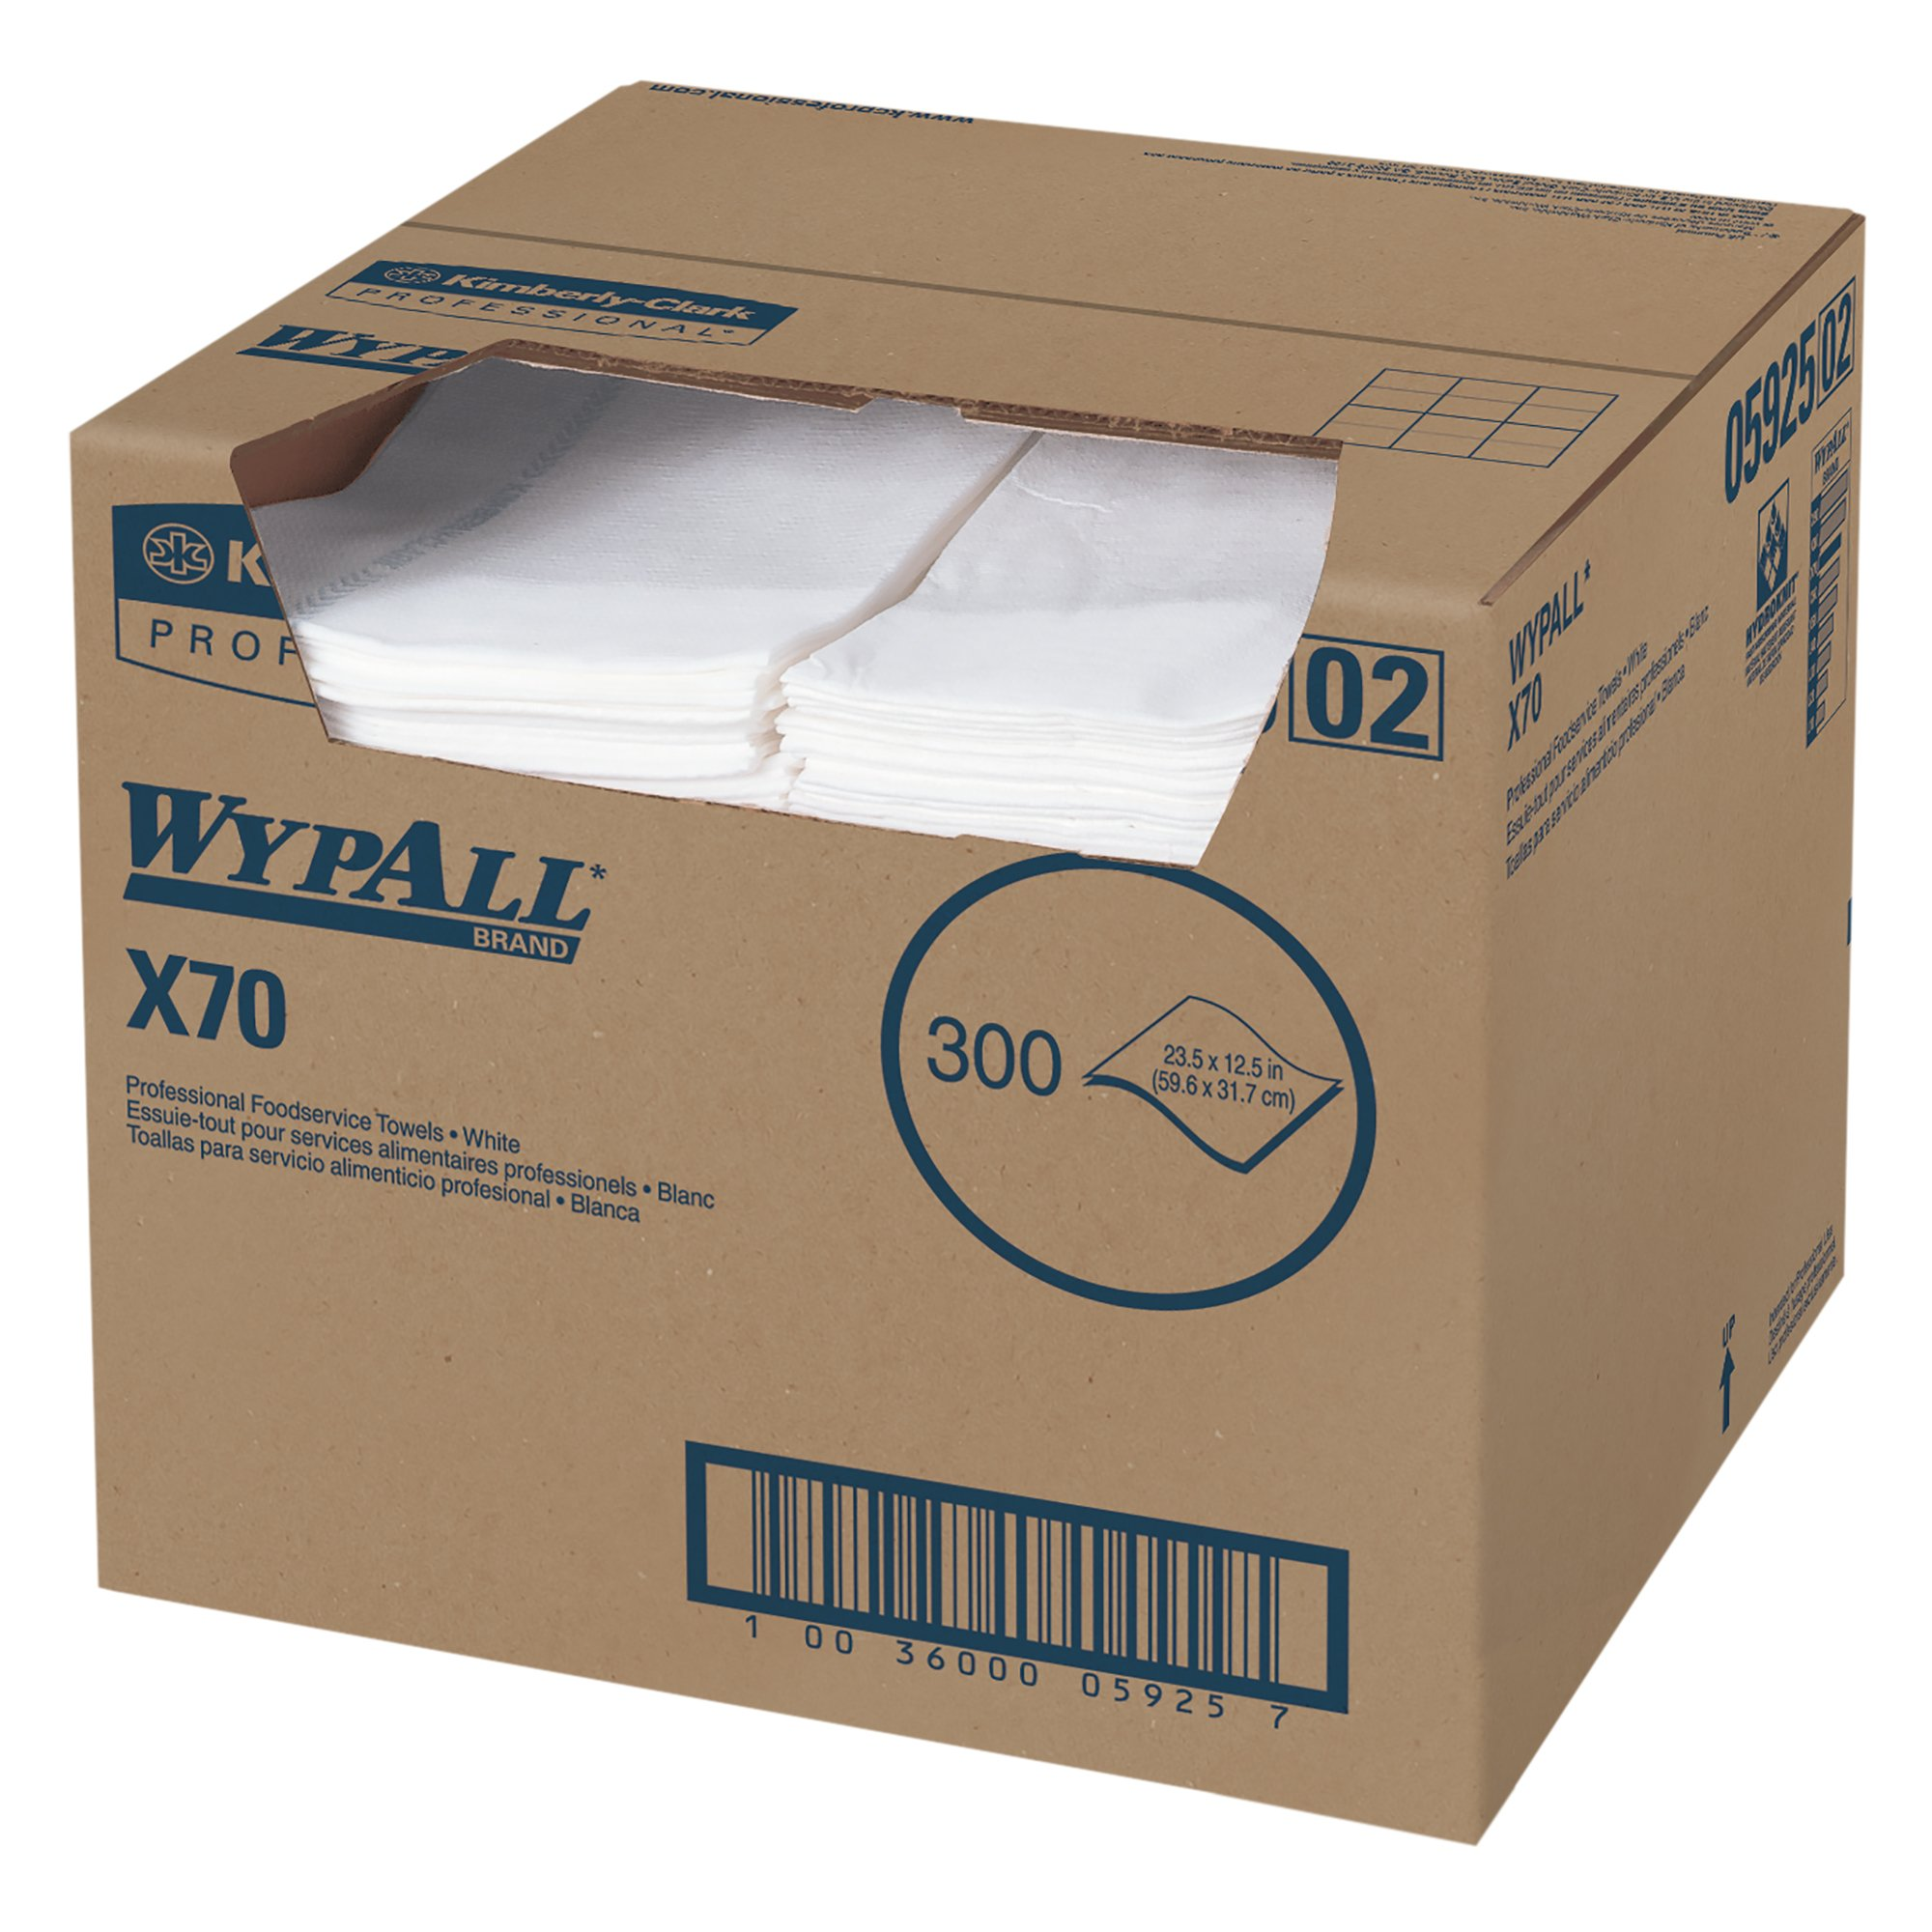 WypAll X70 Extended Use Foodservice Towels (05925) with Kimfresh Antimicrobial Treatment, White, 1 Box, 300 Sheets